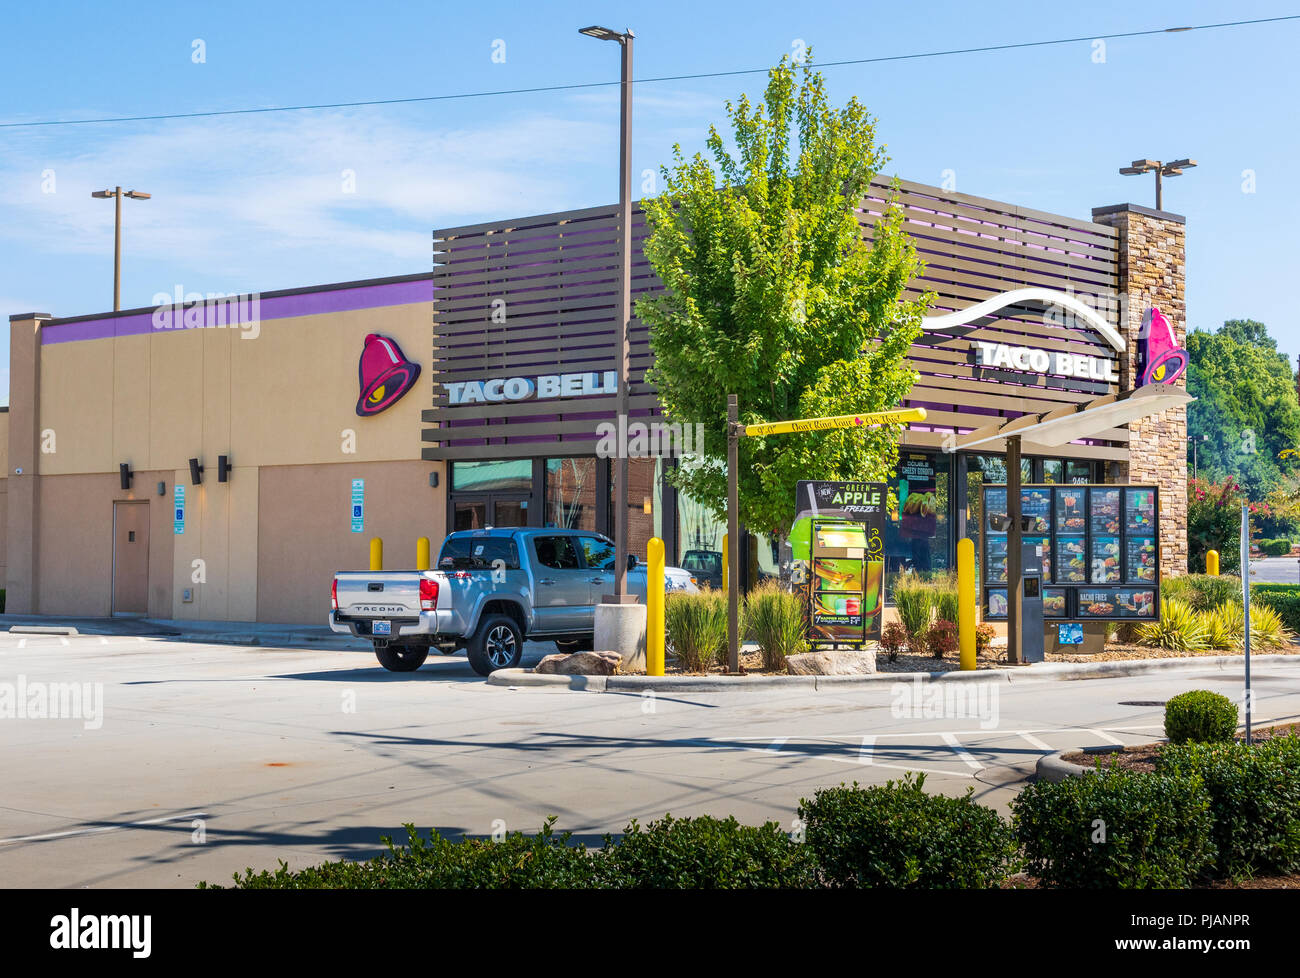 HICKORY, NC, USA-9/2/18: A Taco Bell restaurant in Hickory, NC, showing the drive-thru, and one pickup truck parked in lot. No people are visible. Stock Photo